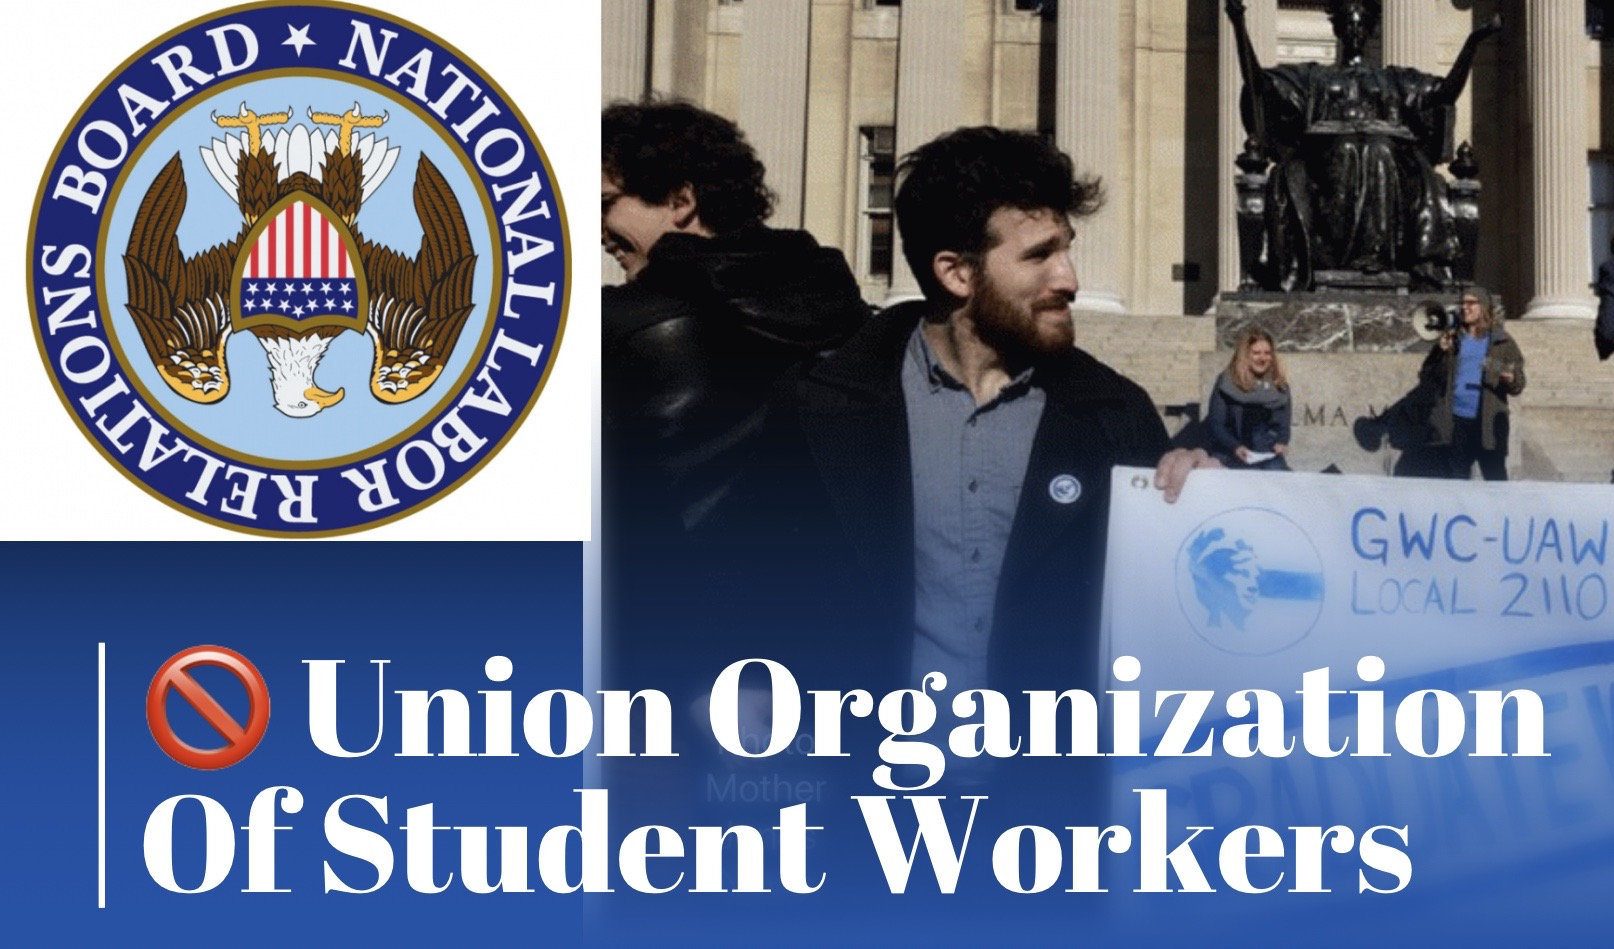 2/28 New Comment Deadline For NLRB Proposal To Exclude College Work Study Student Workers From NLRA Coverage